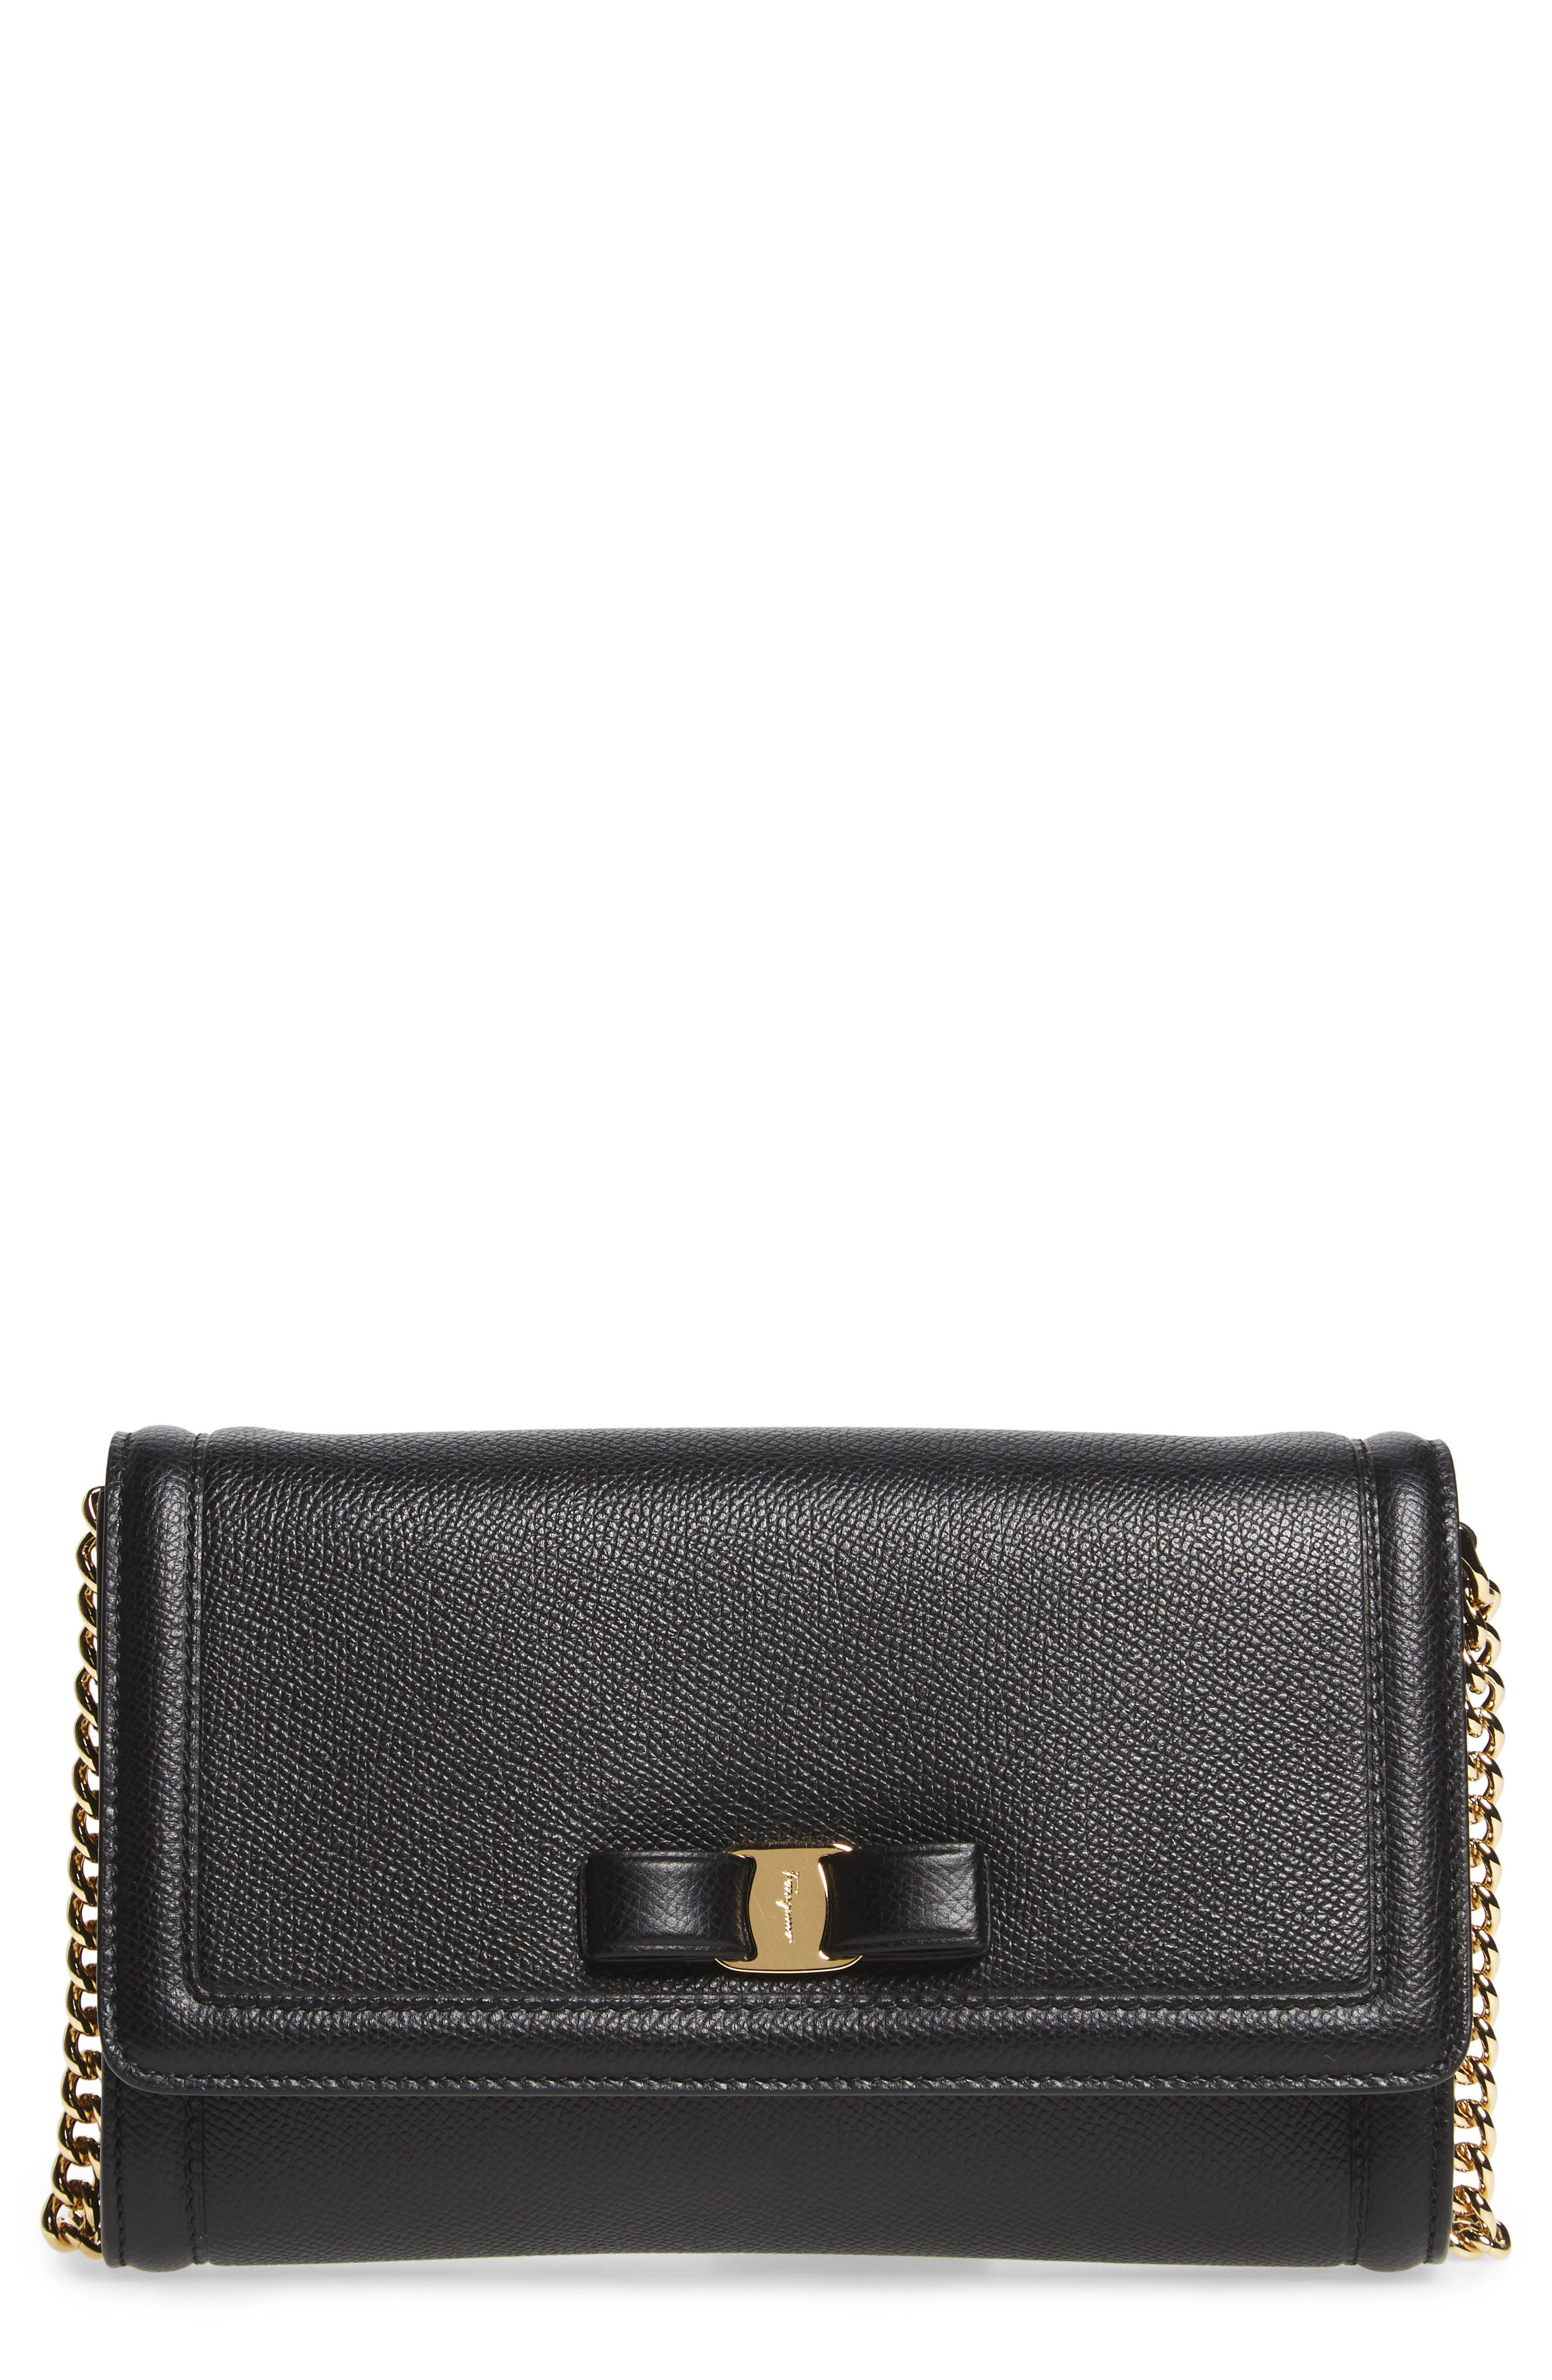 Salvatore Ferragamo Mini Vara Leather Crossbody Bag